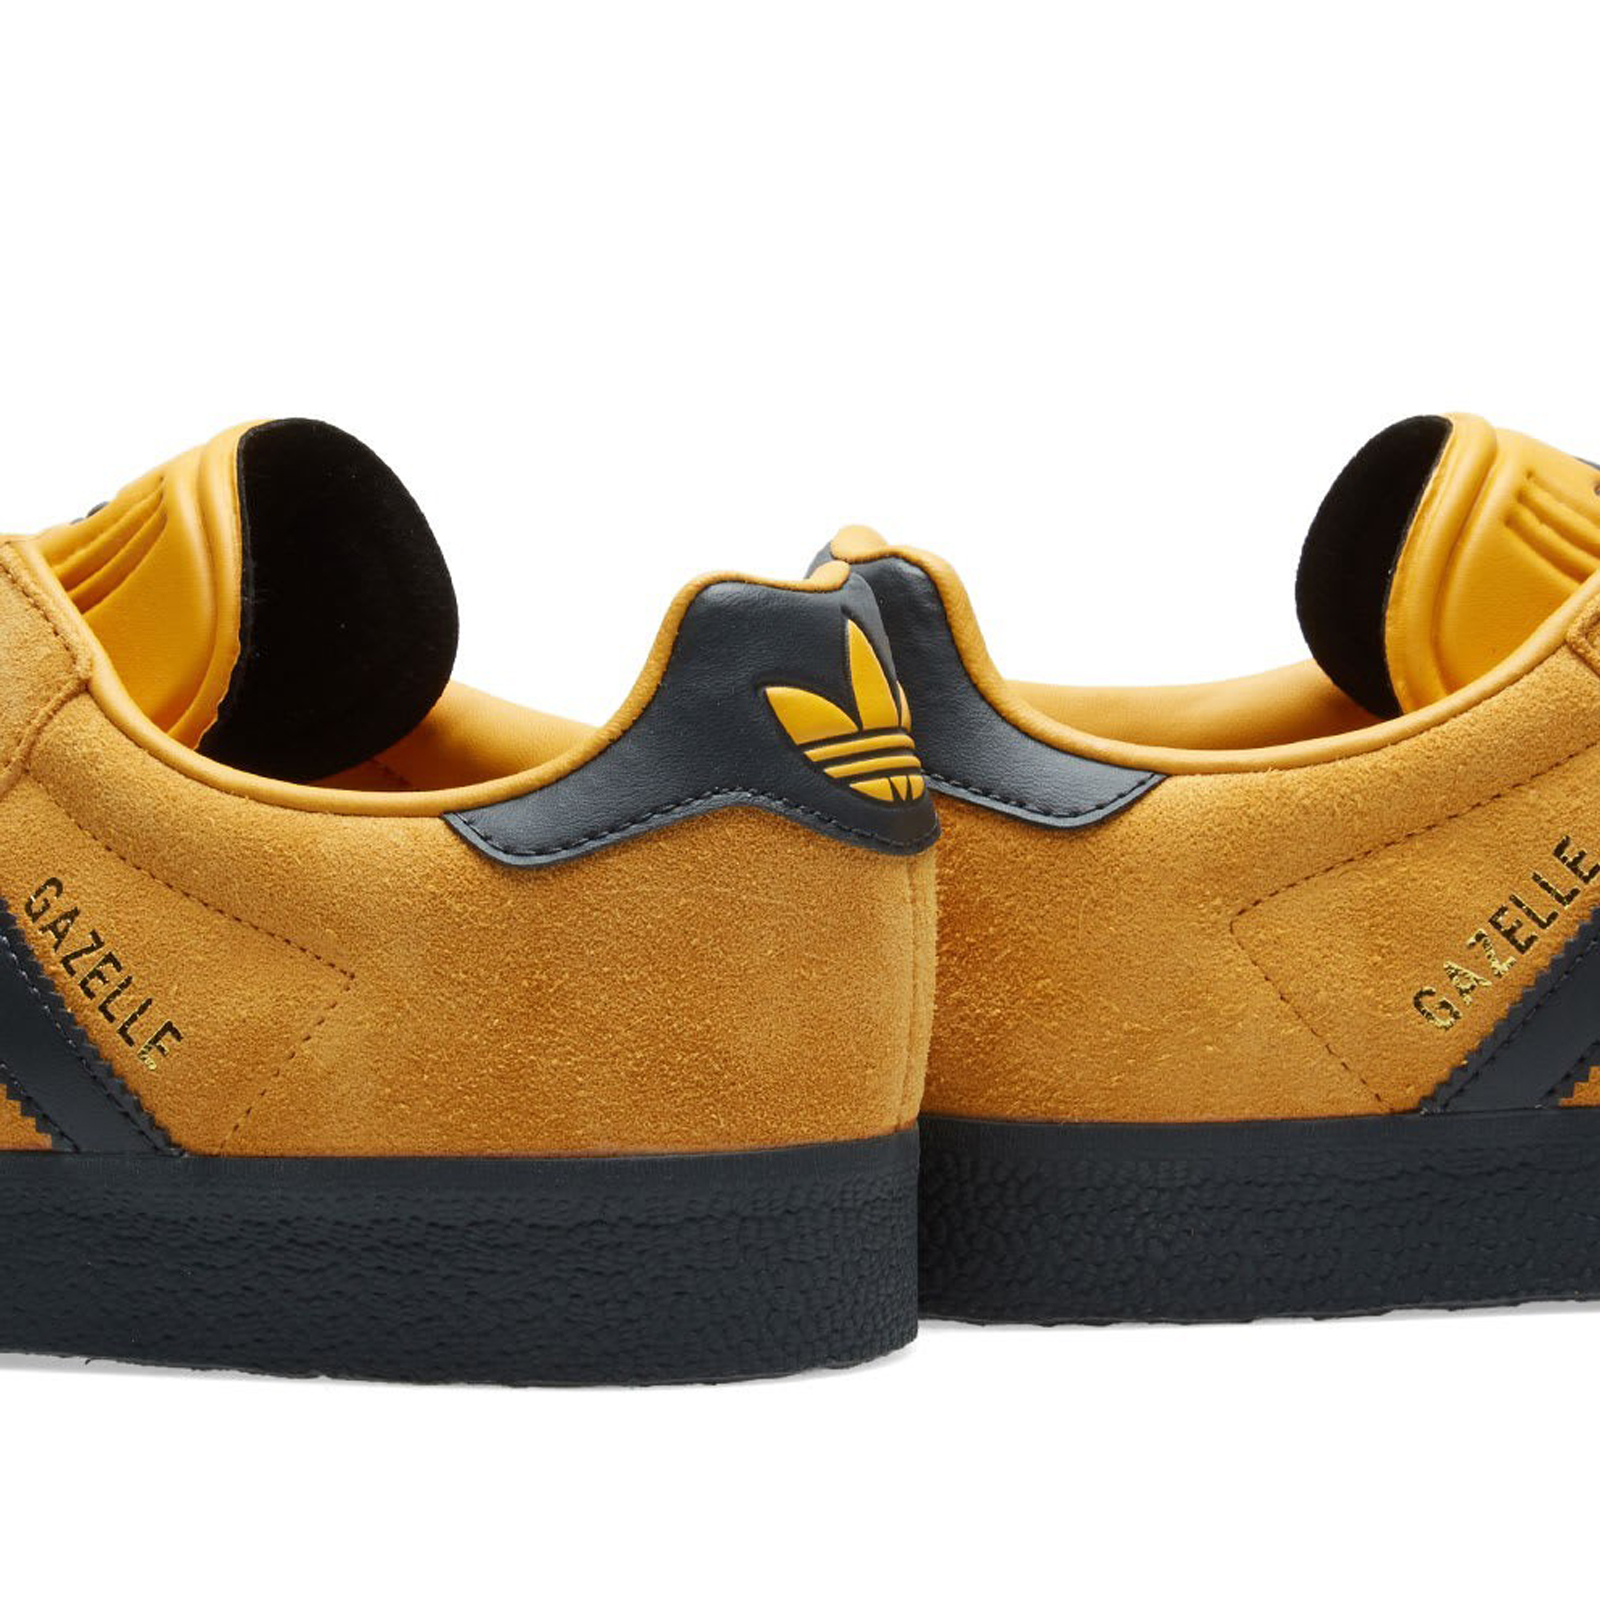 Details about Adidas Originals Gazelle Super Trainers Shoes Samba Special CQ2795 Yellow Carbon